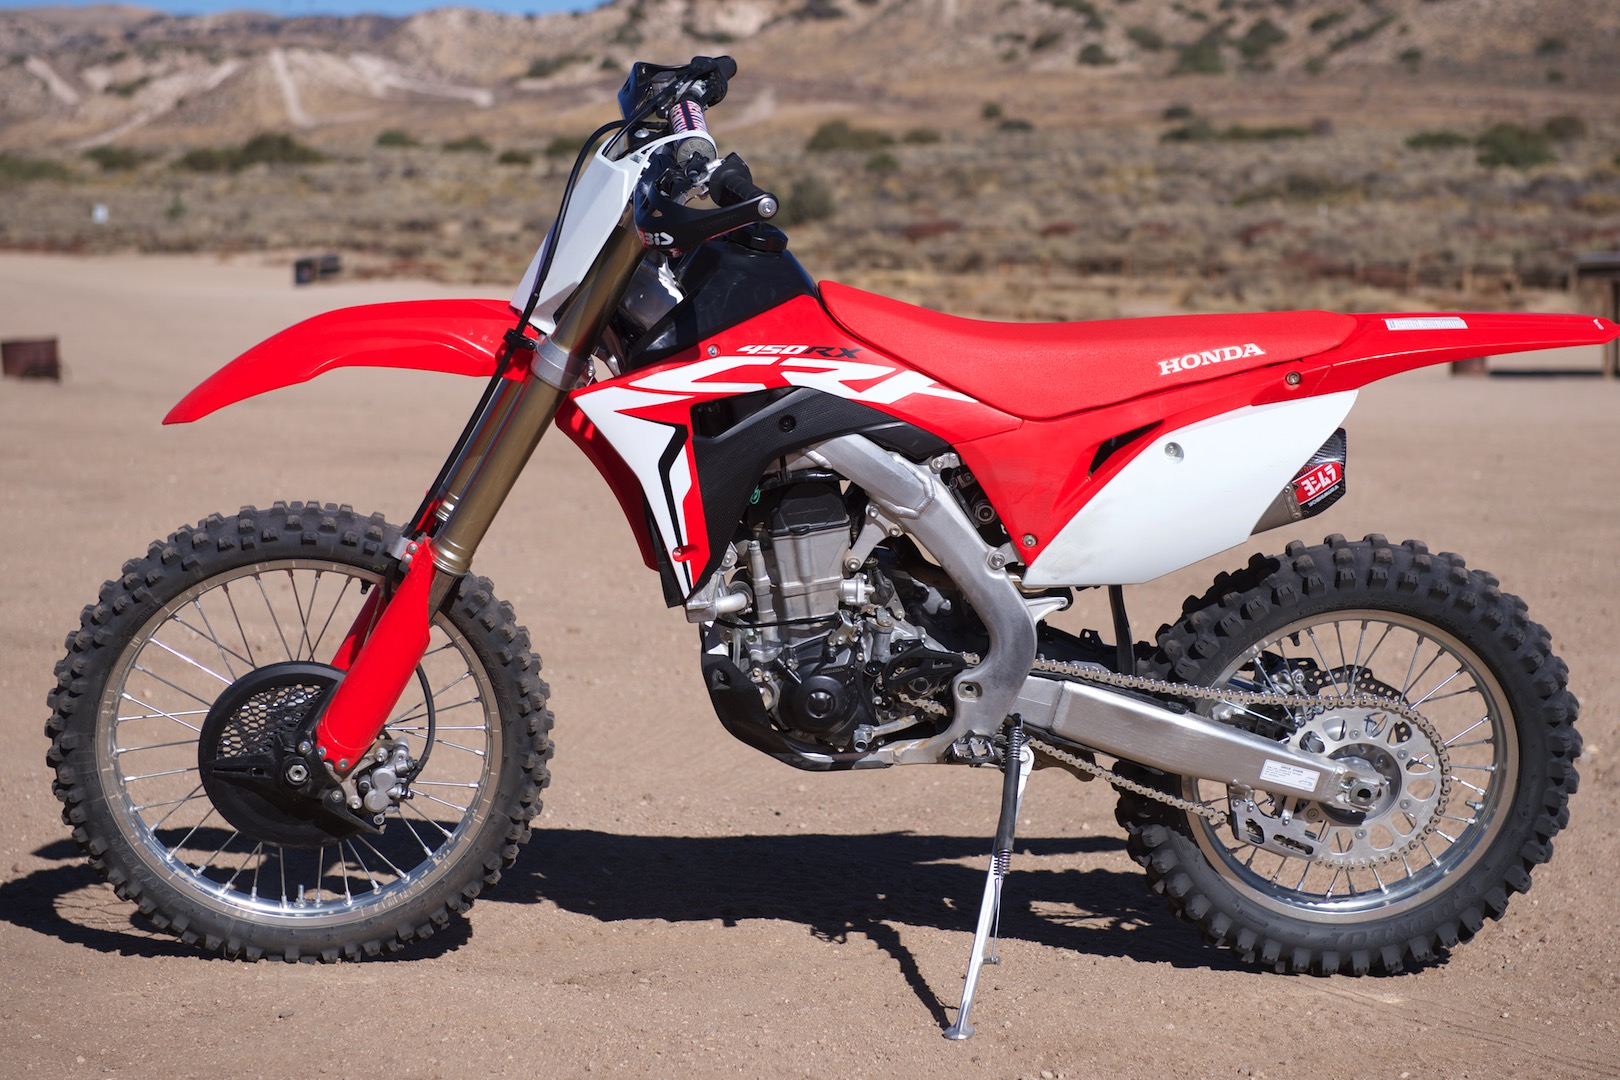 2018 Honda CRF450RX Project Bike parts